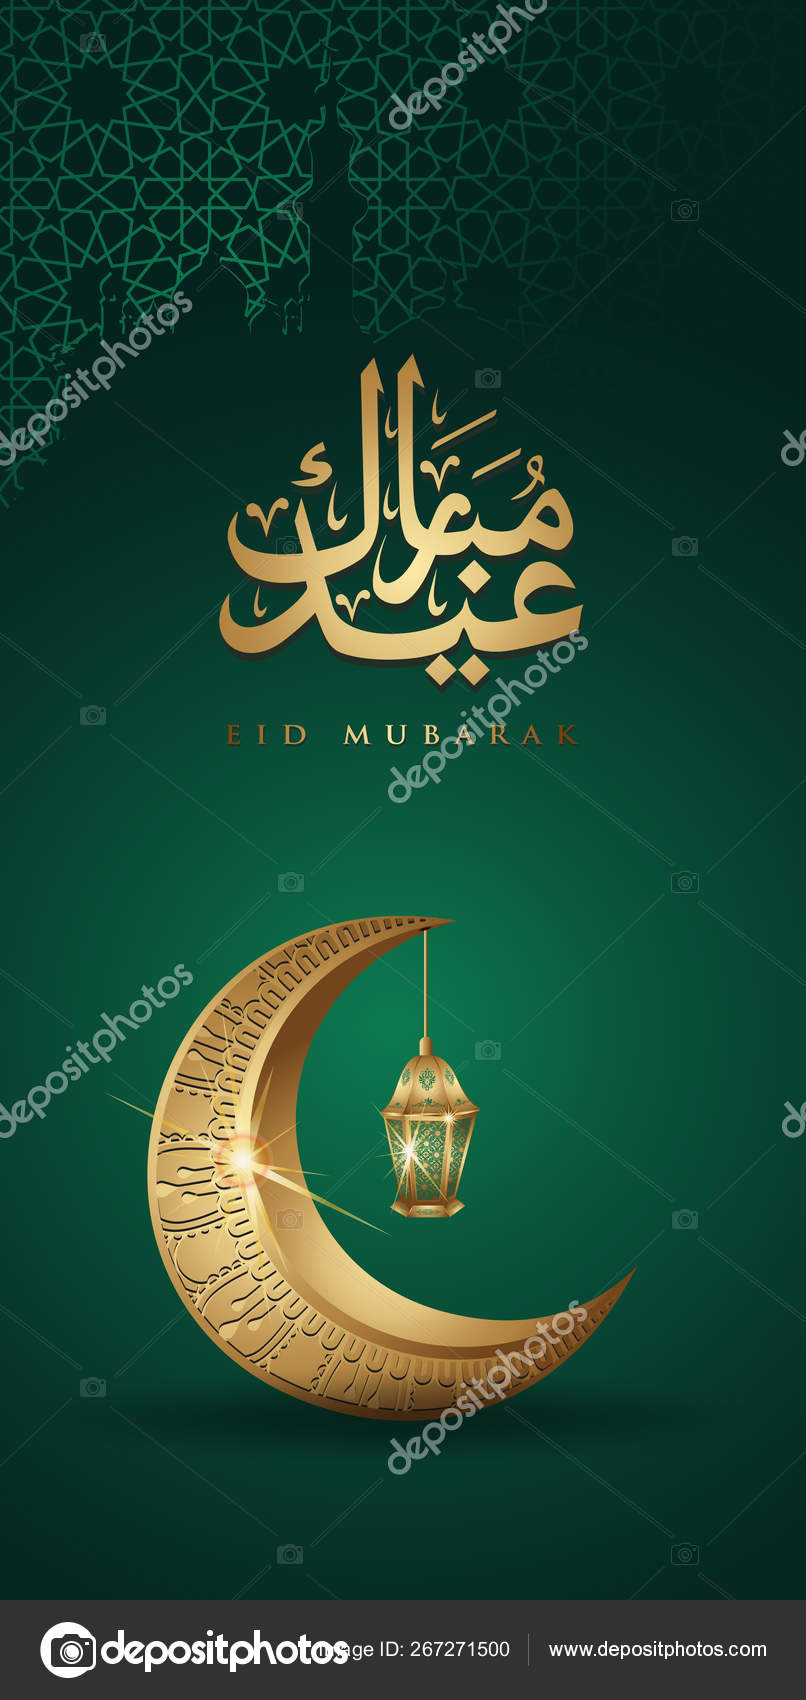 Wallpapers Islamic Hd For Mobile Eid Mubarak With Golden